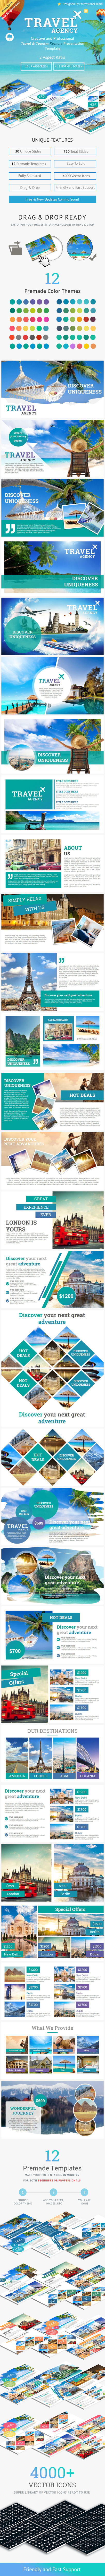 Travel and Tourism Keynote Presentation Template - Business Keynote Templates